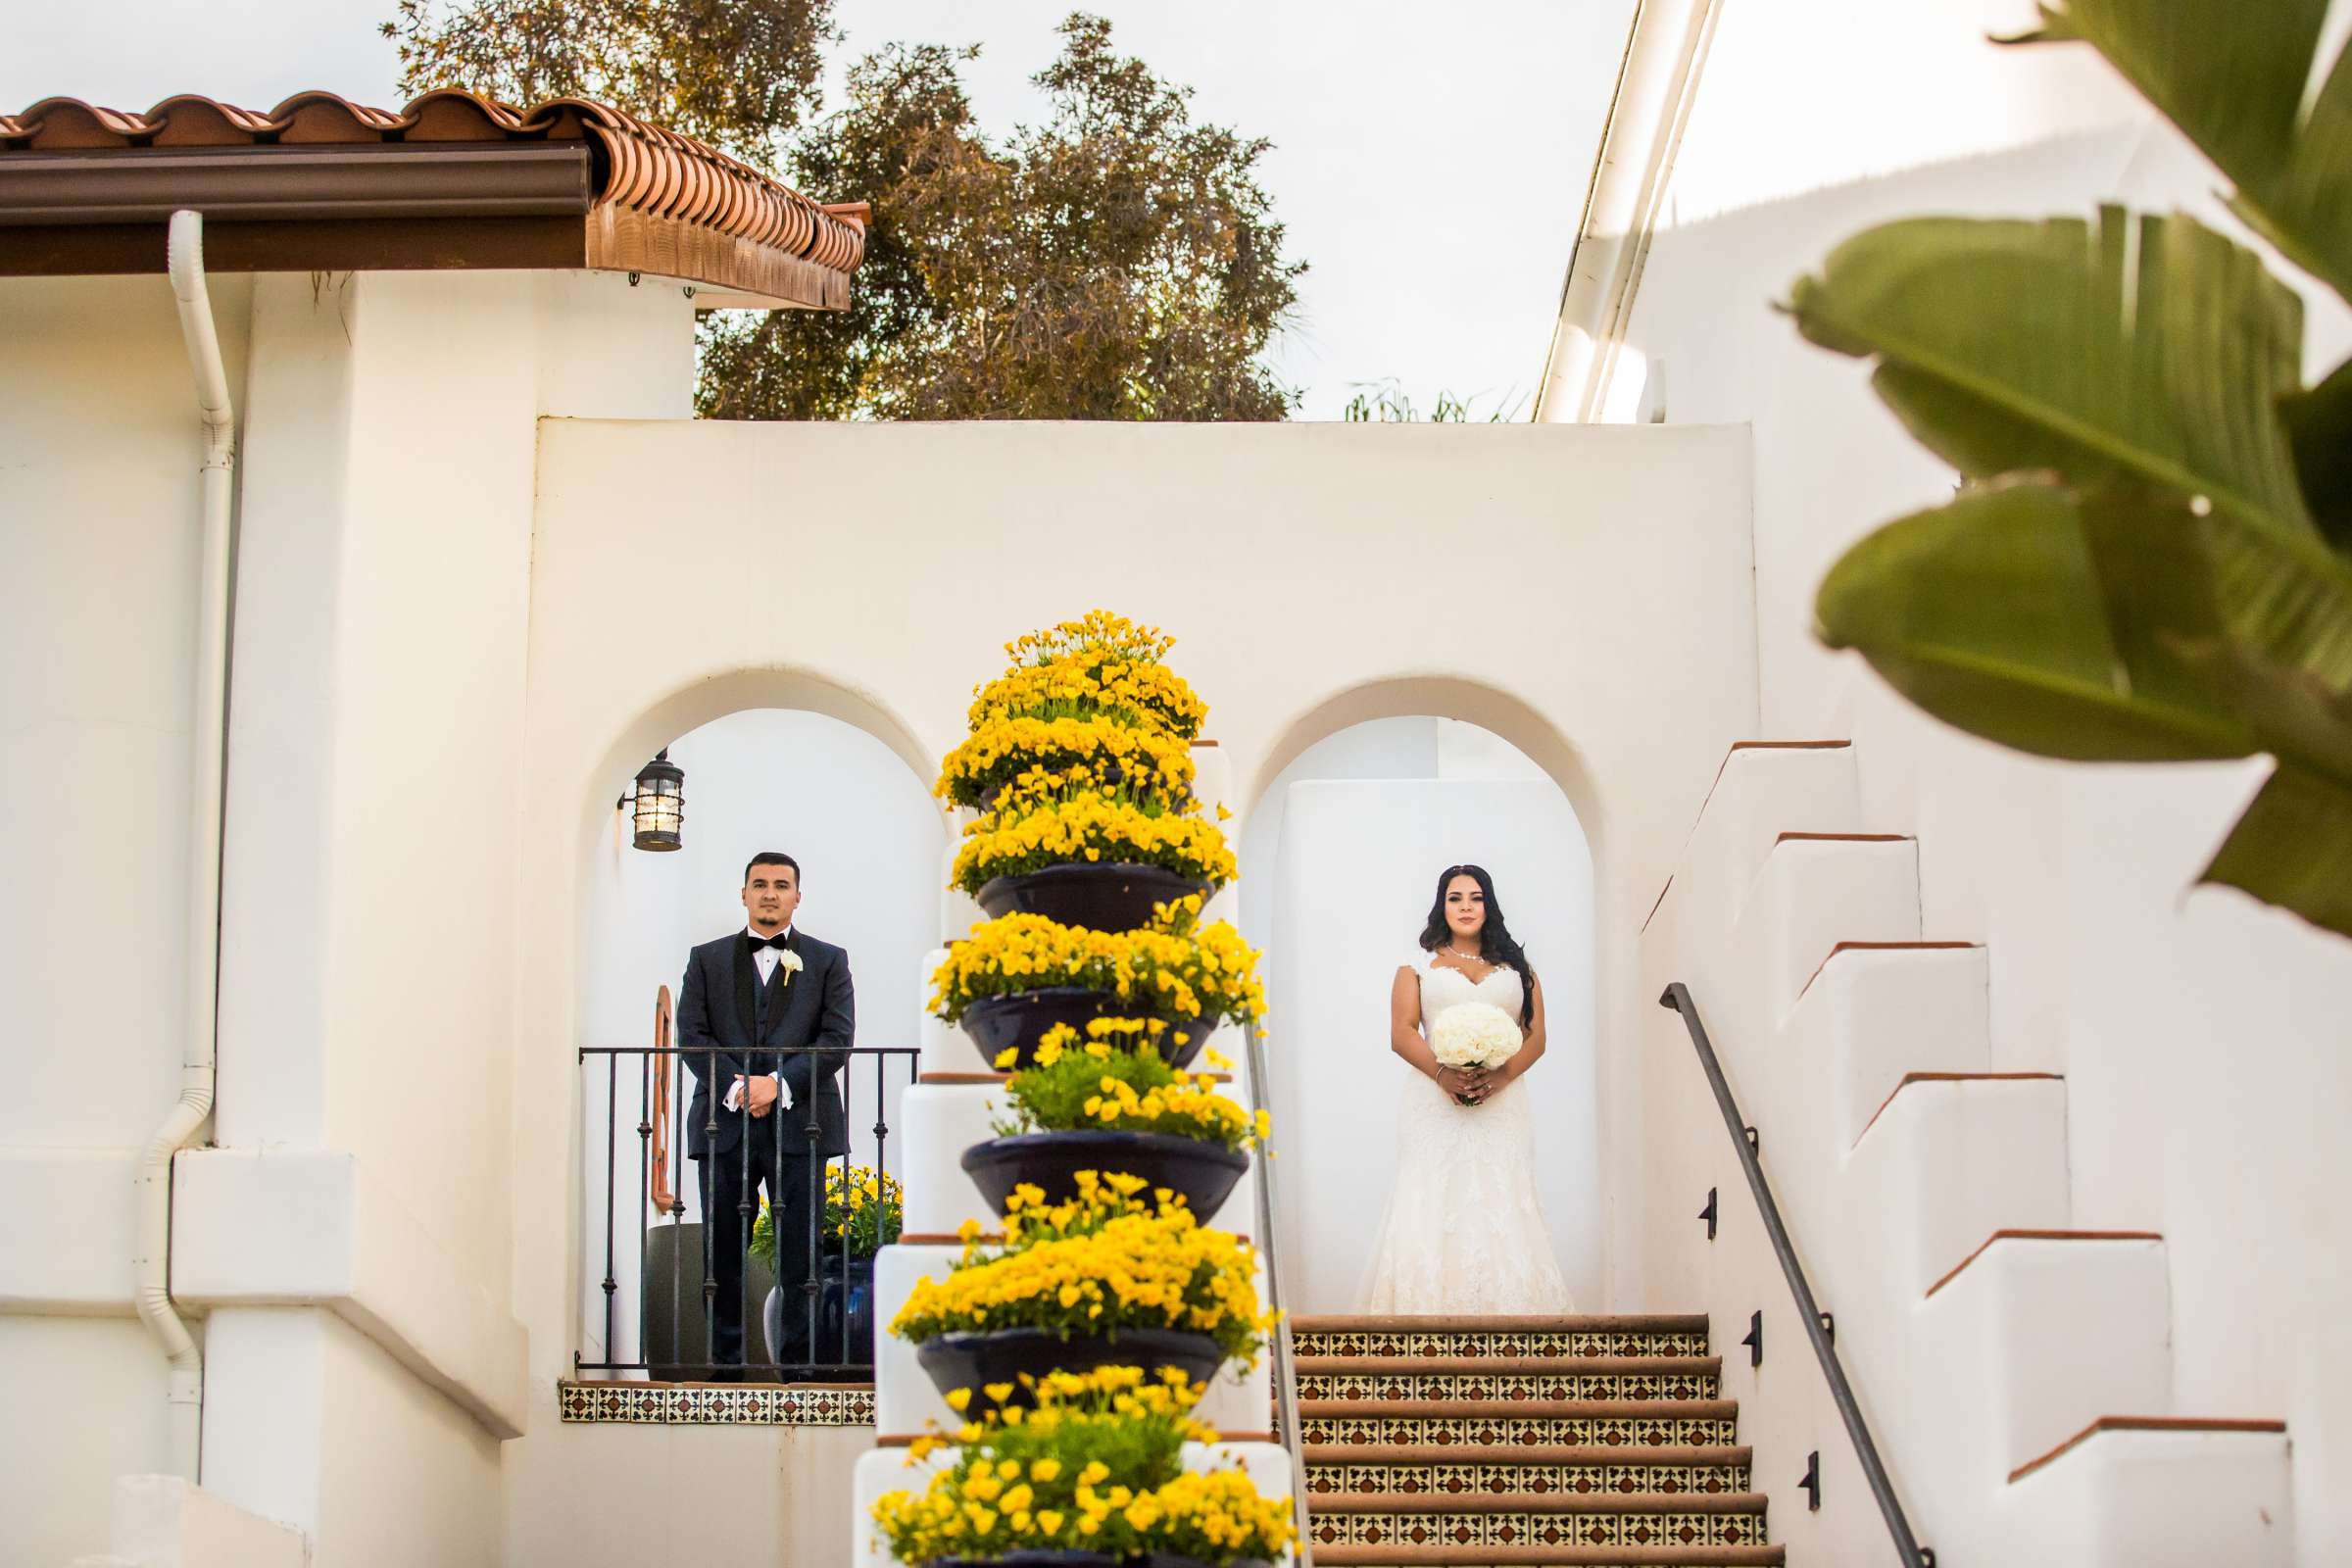 Omni La Costa Resort & Spa Wedding coordinated by Bliss Events, Yvette and Daniel Wedding Photo #340963 by True Photography